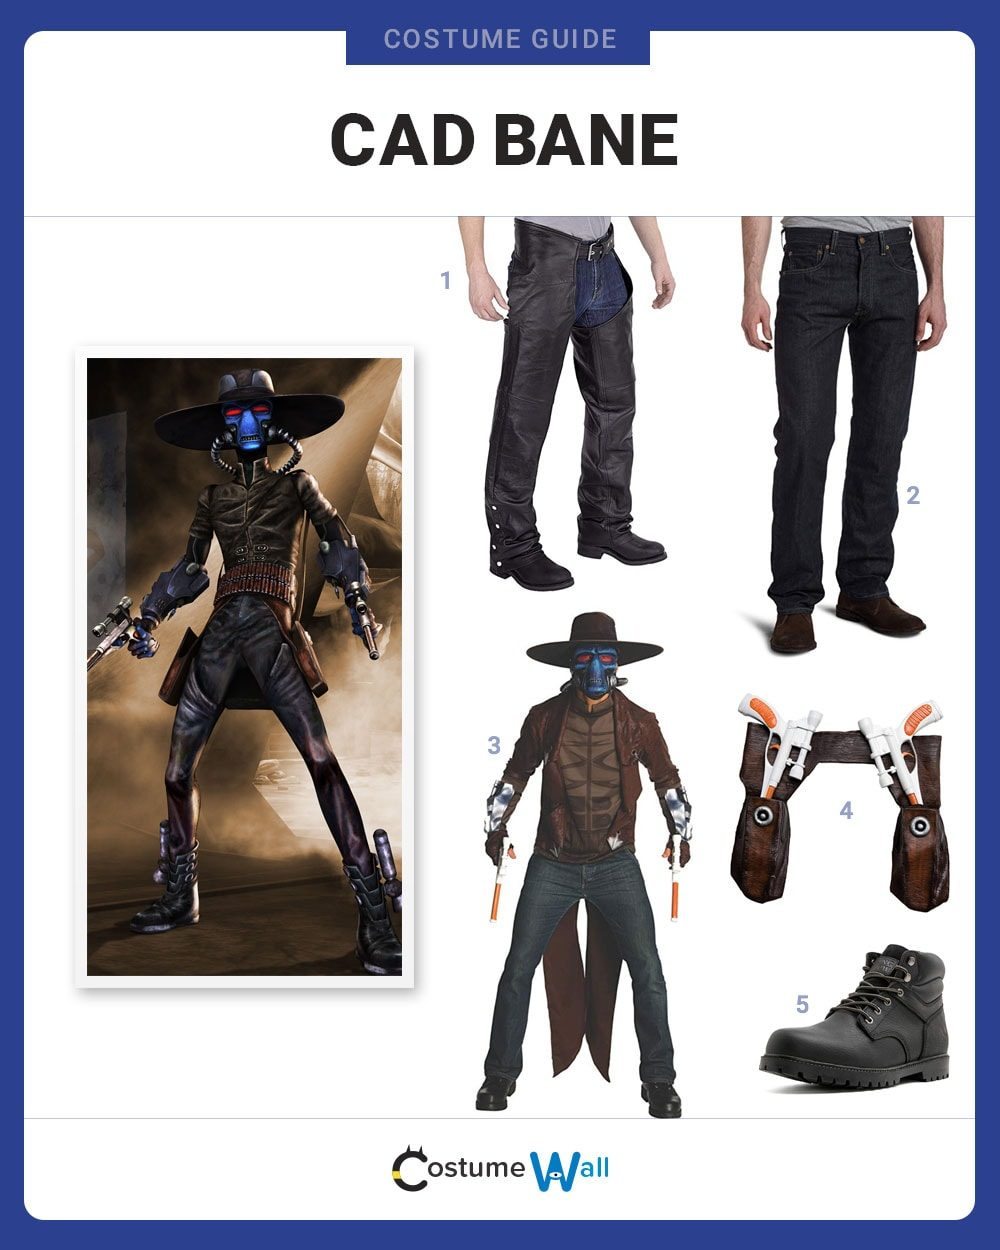 Cad Bane Costume Guide